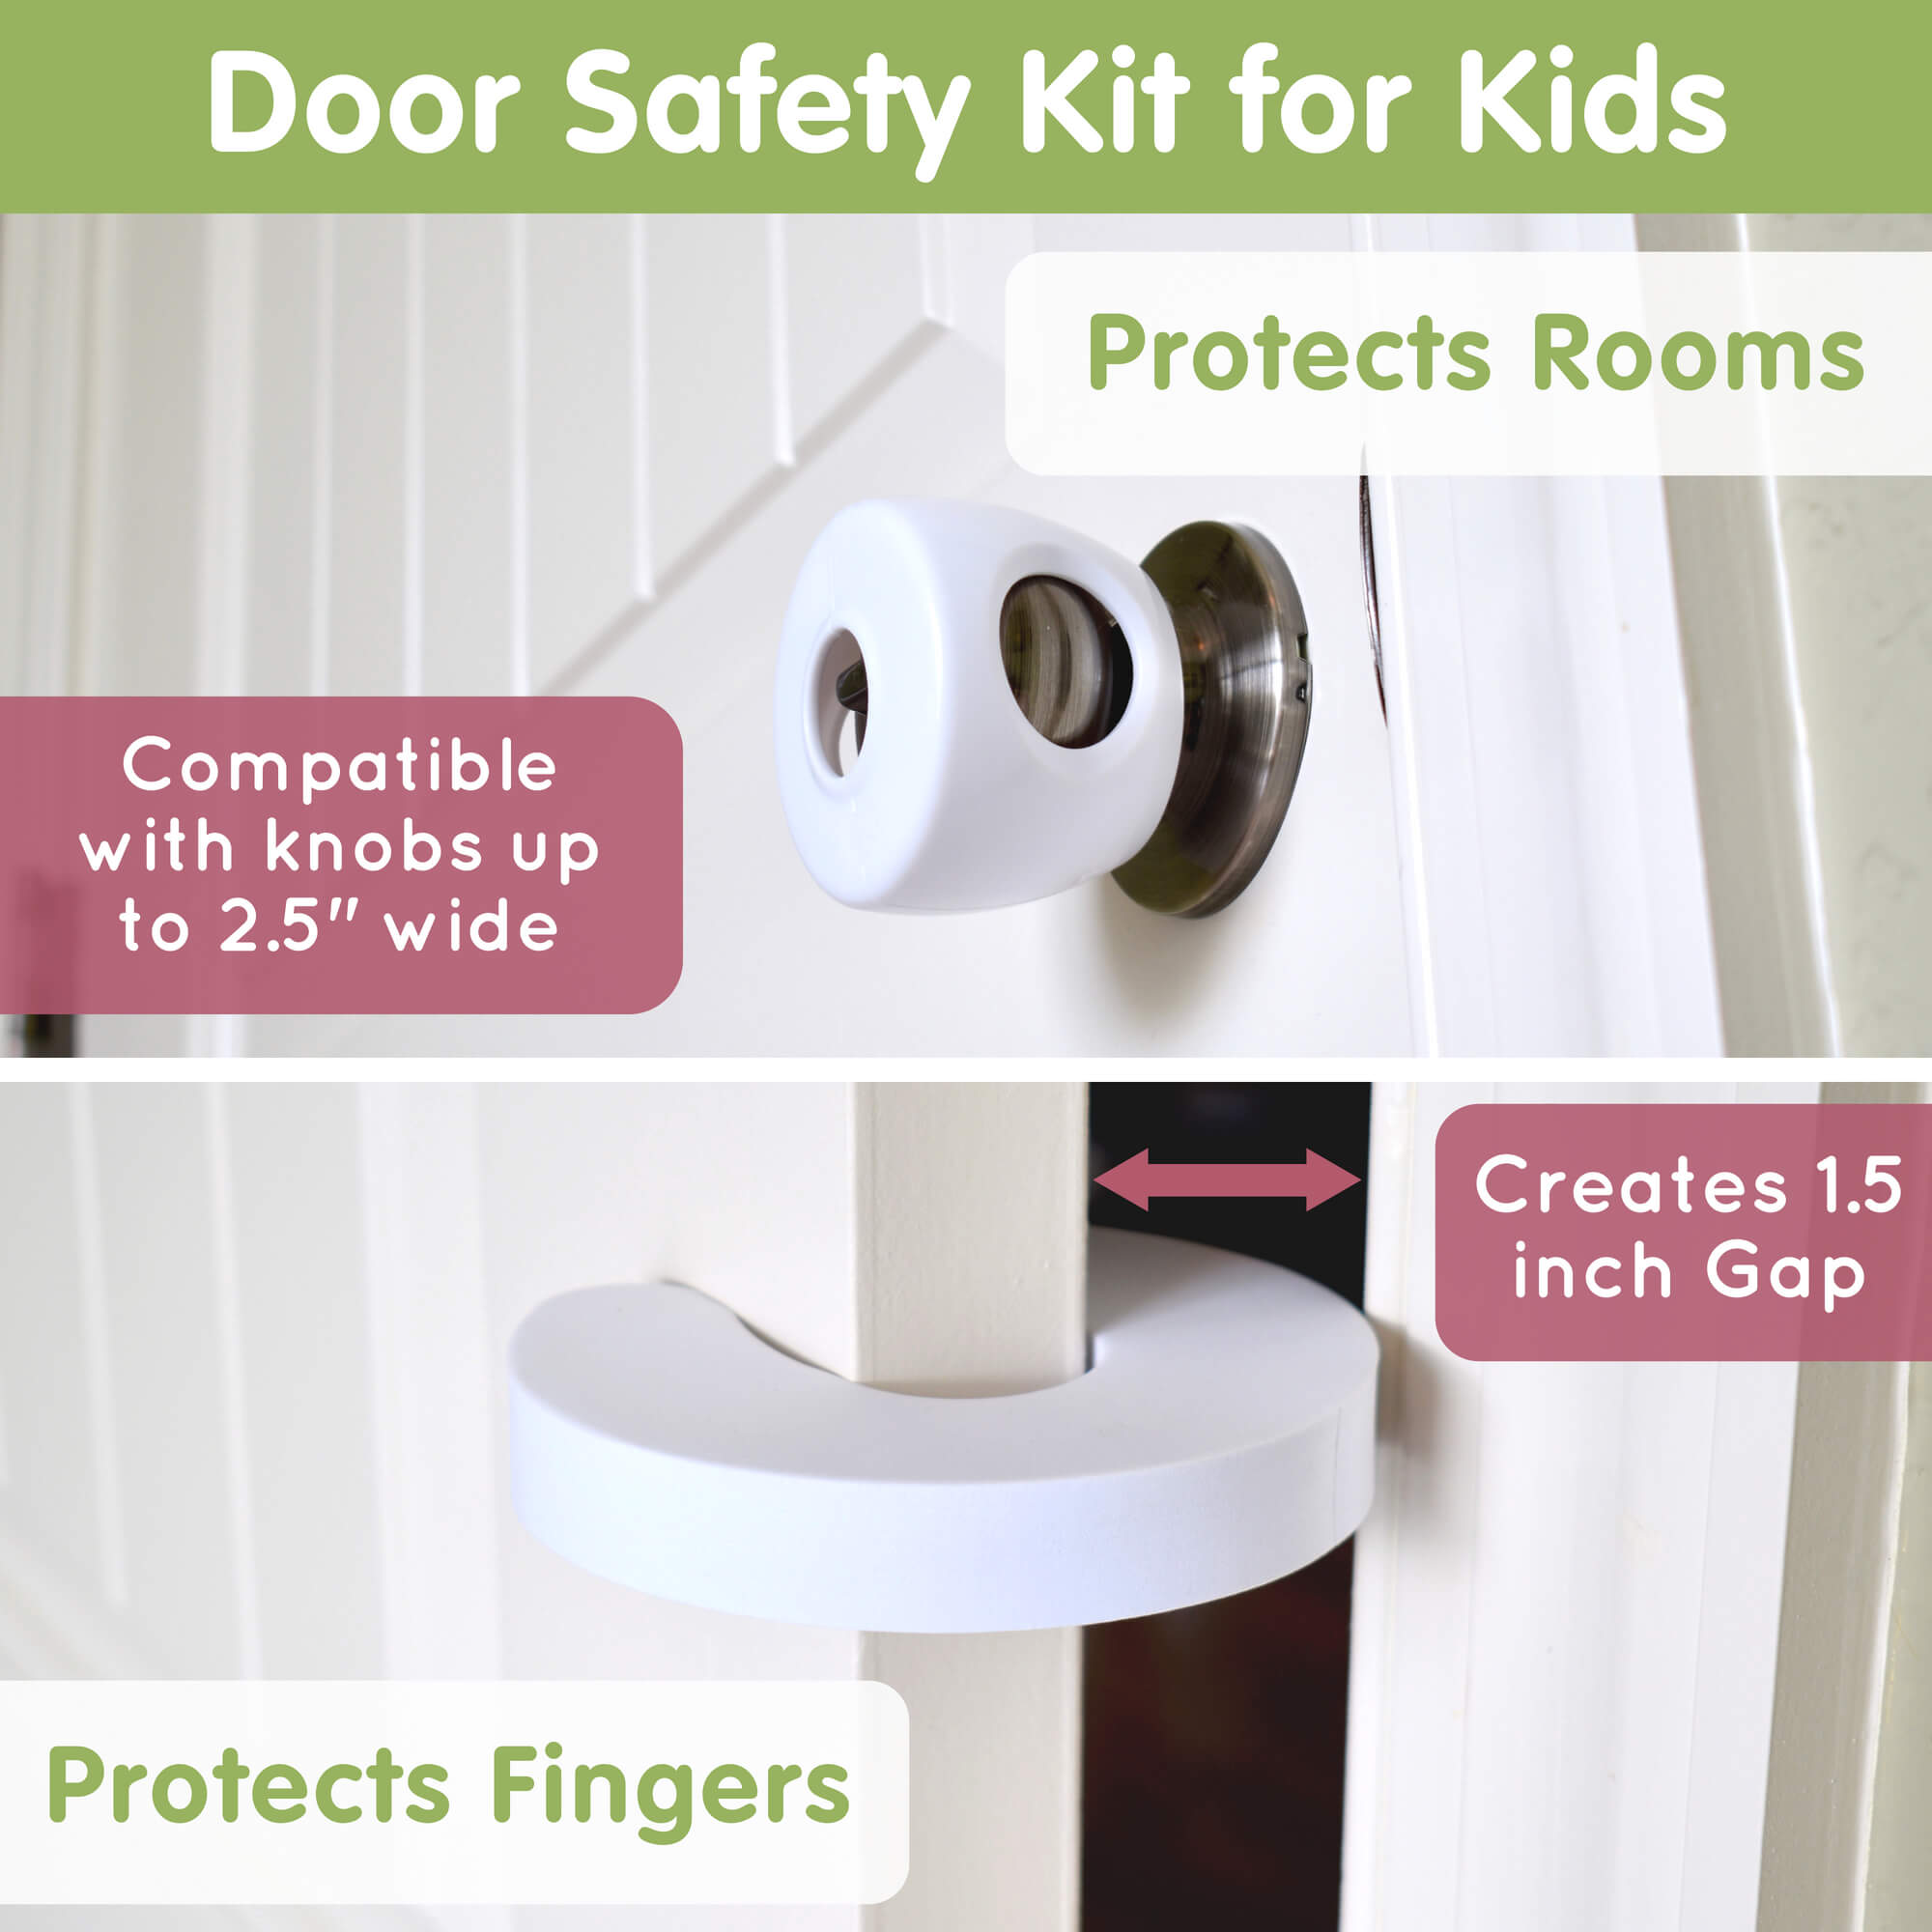 Child Door Safety Kit 4 Door Knob Covers 2 Finger